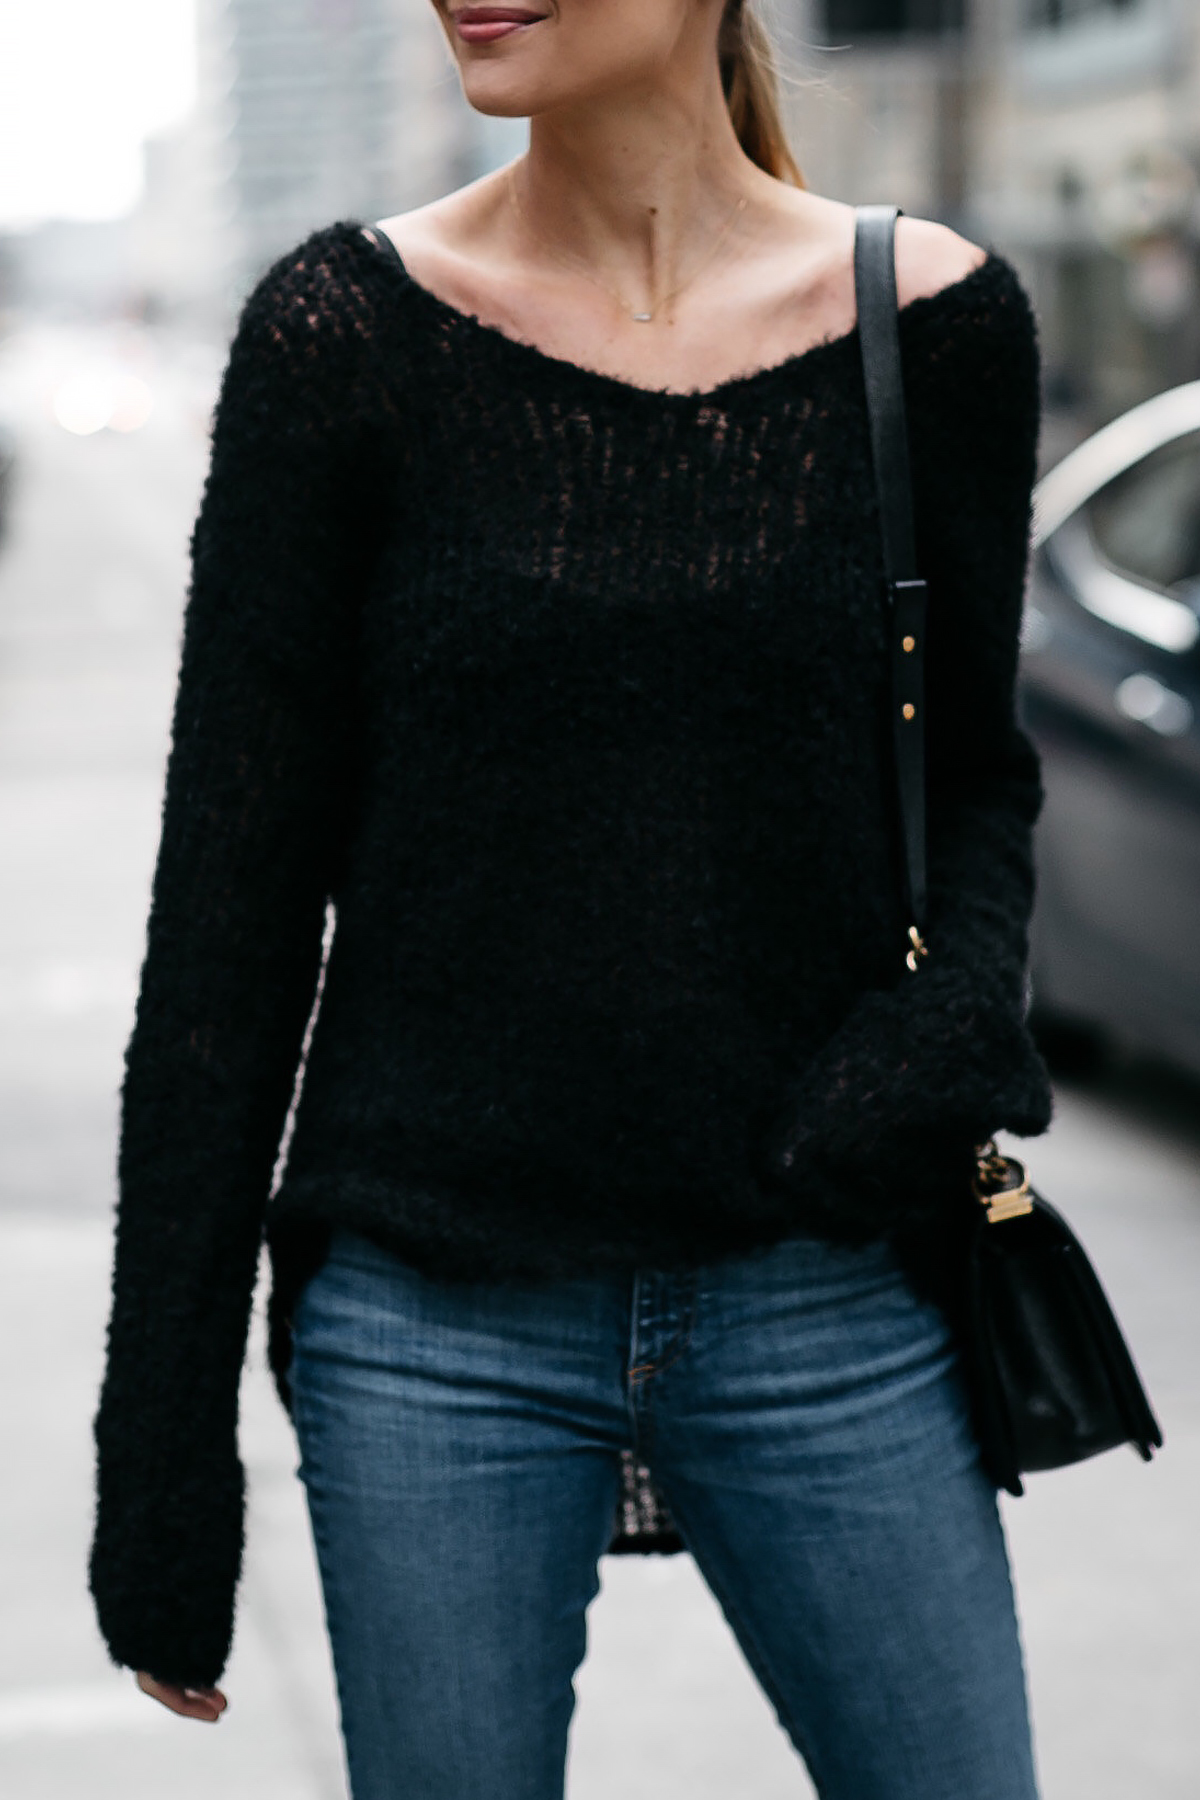 Woman Wearing rag and bone Black Sweater Denim Skinny Jeans Fashion Jackson Dallas Blogger Fashion Blogger Street Style